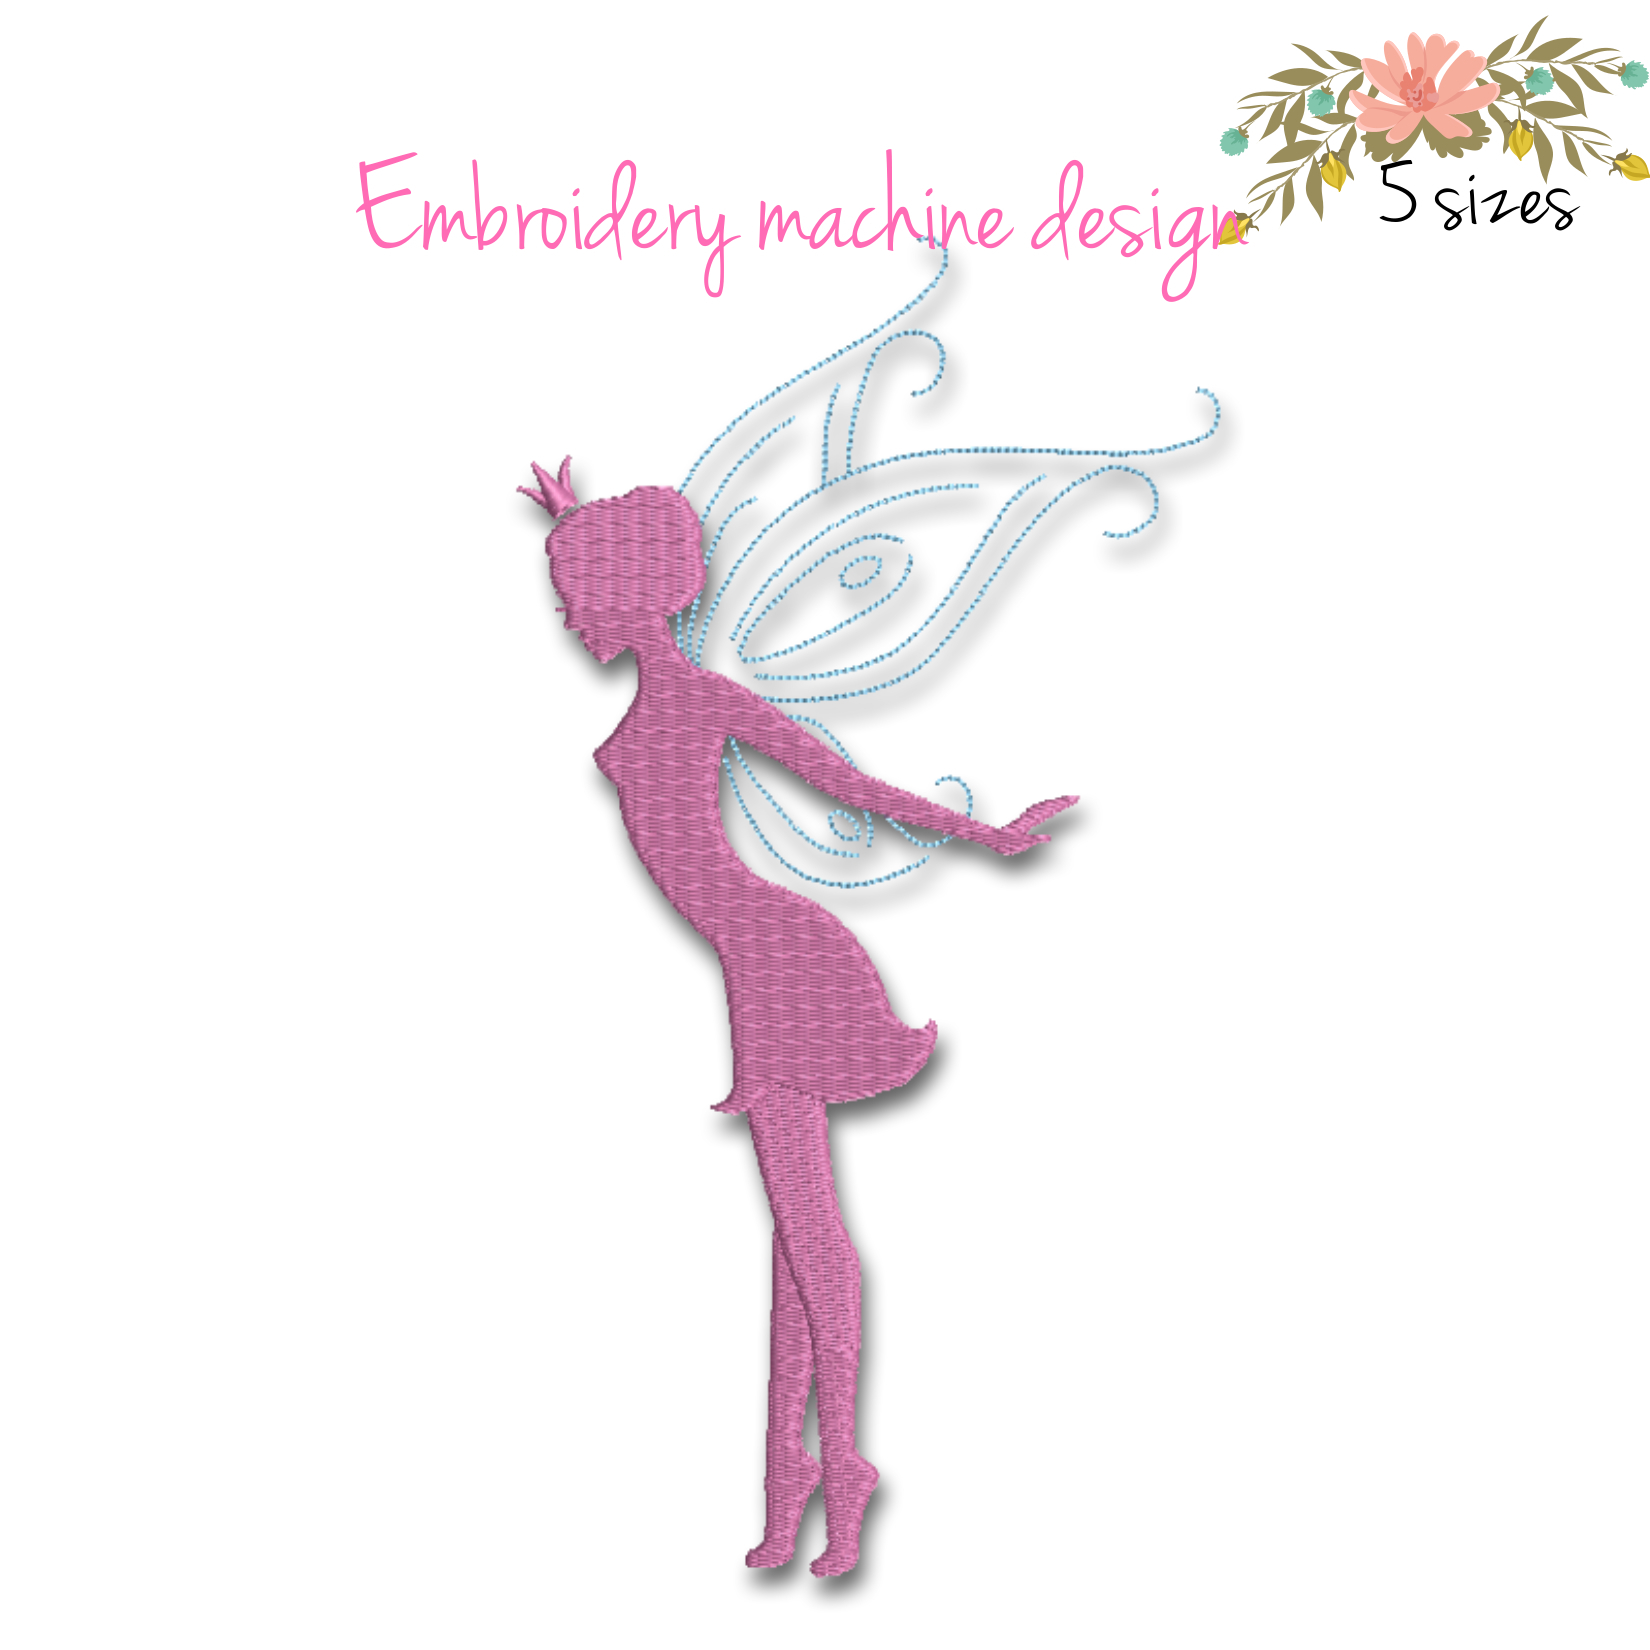 Fairy Embroidery Machine Designs Pixie By Gretaembroidery